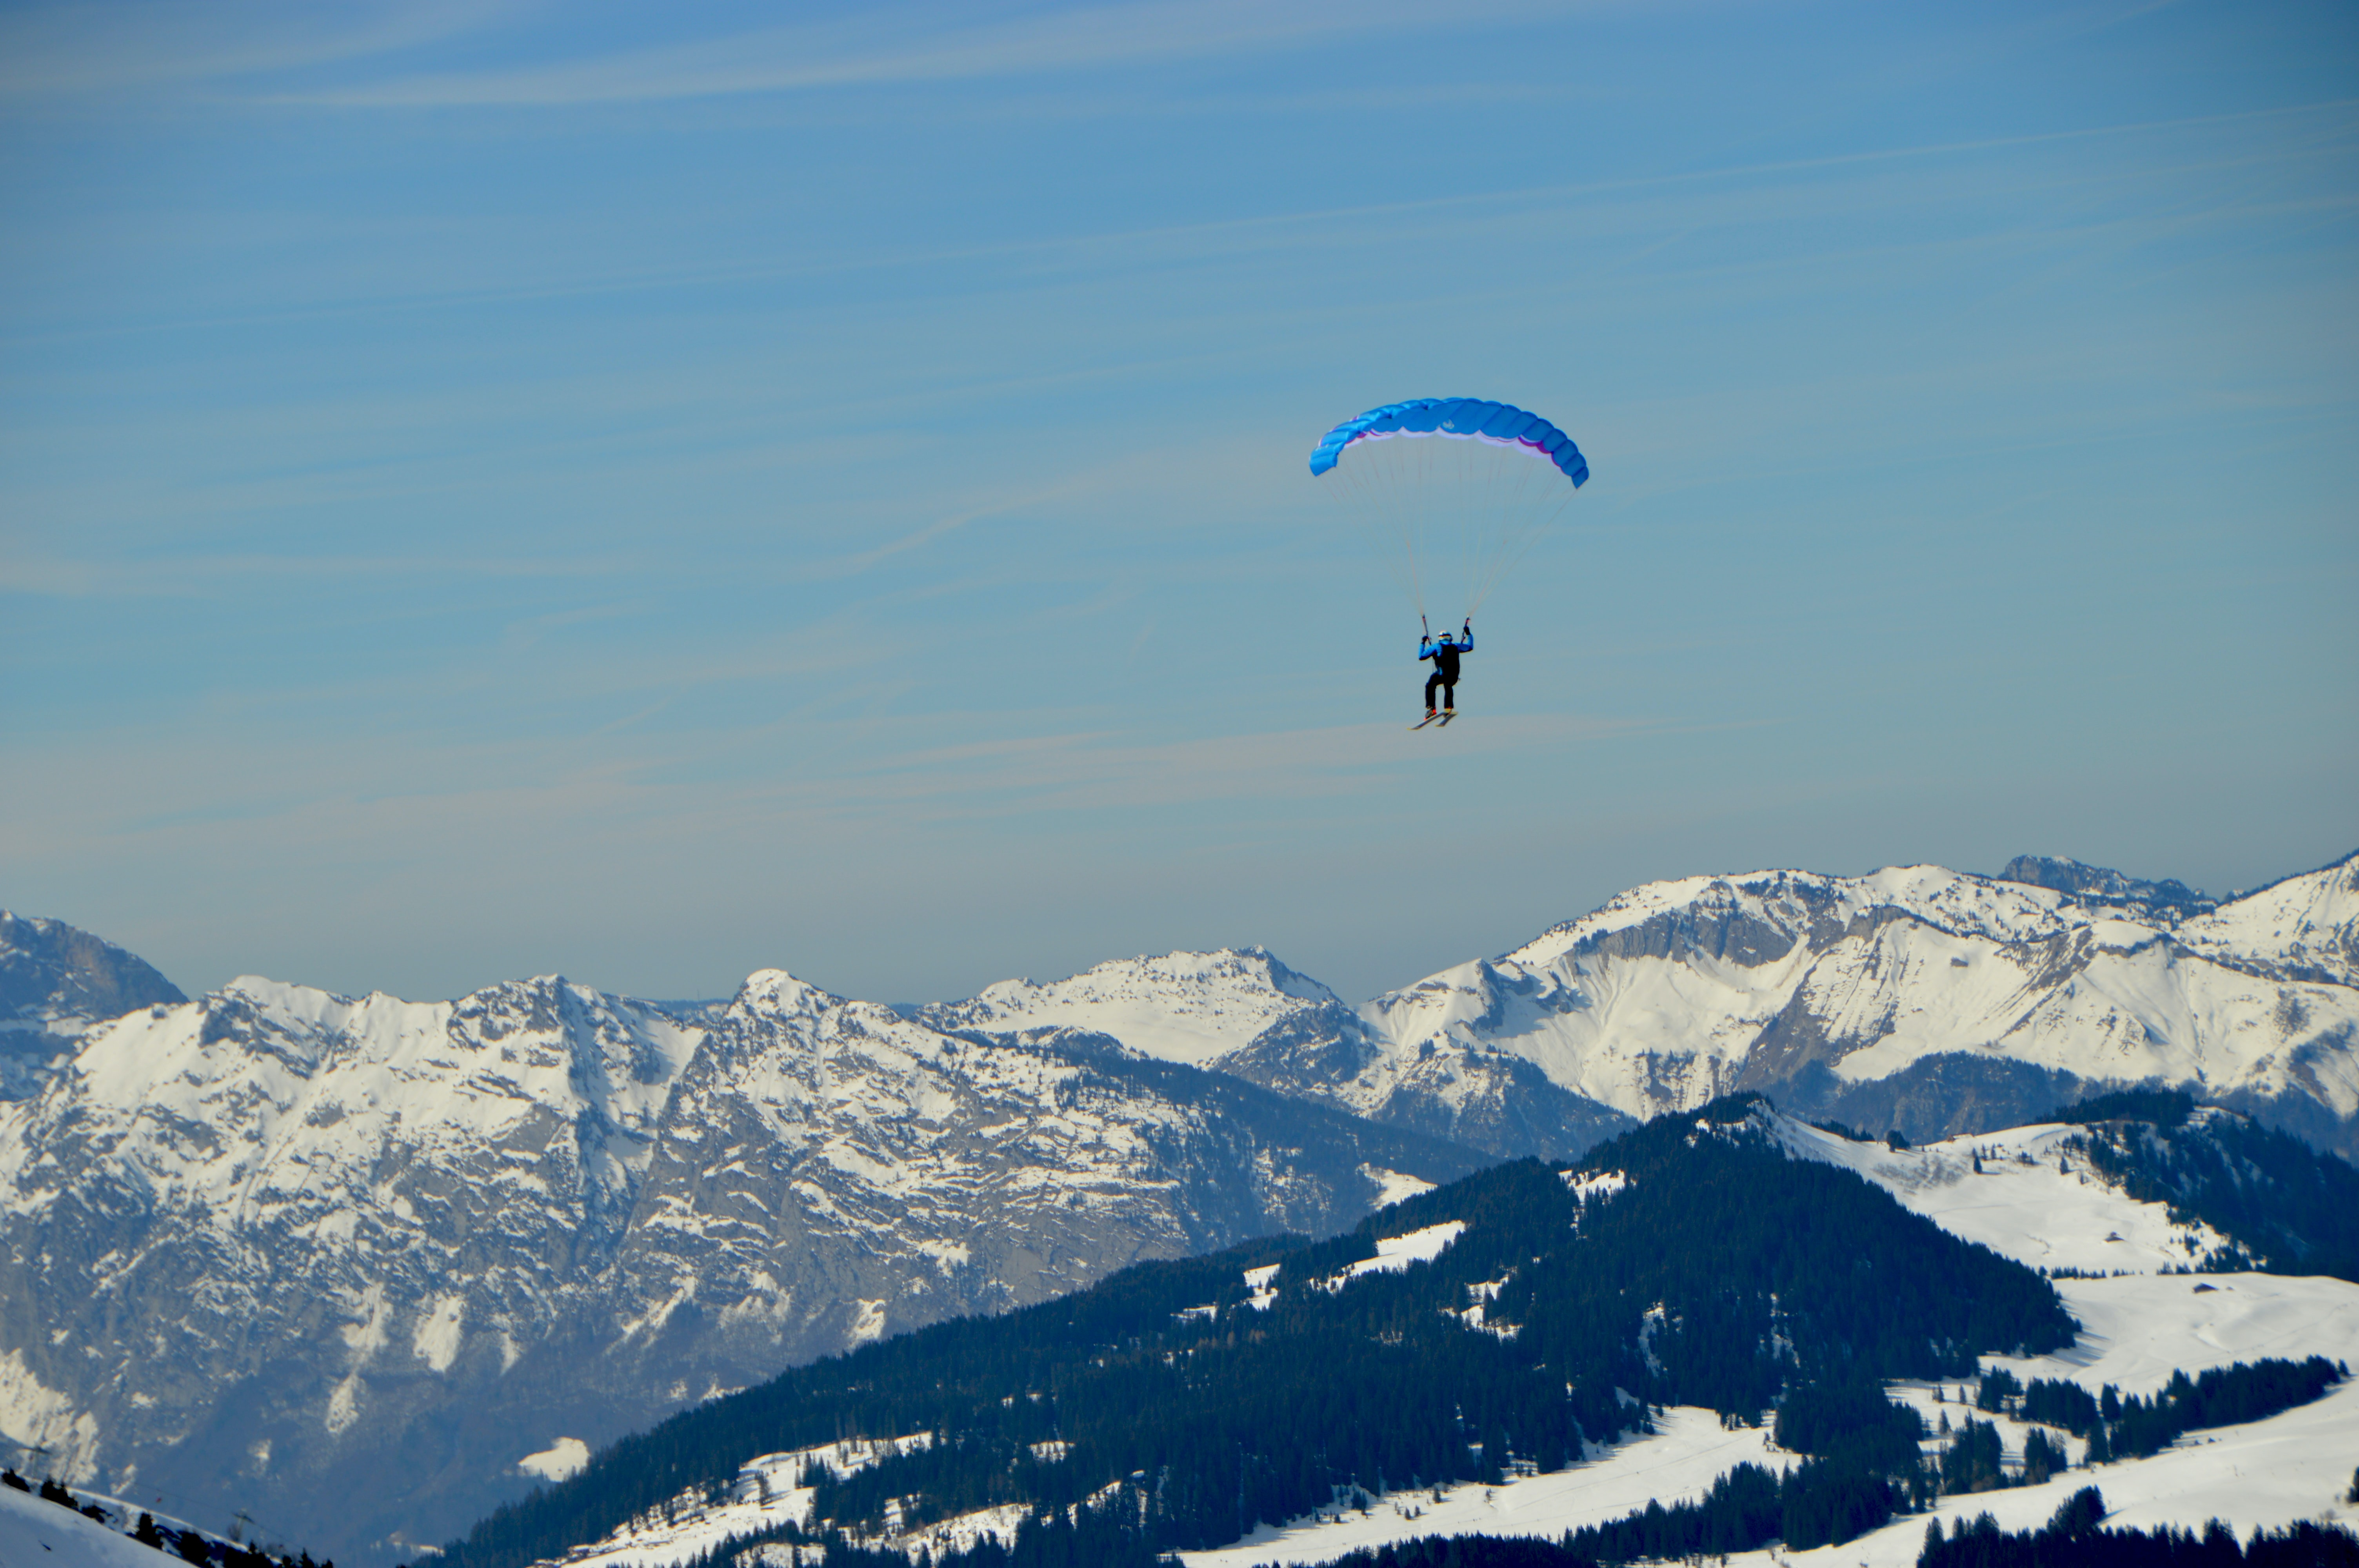 Person parachutes over mountains in a blue landscape